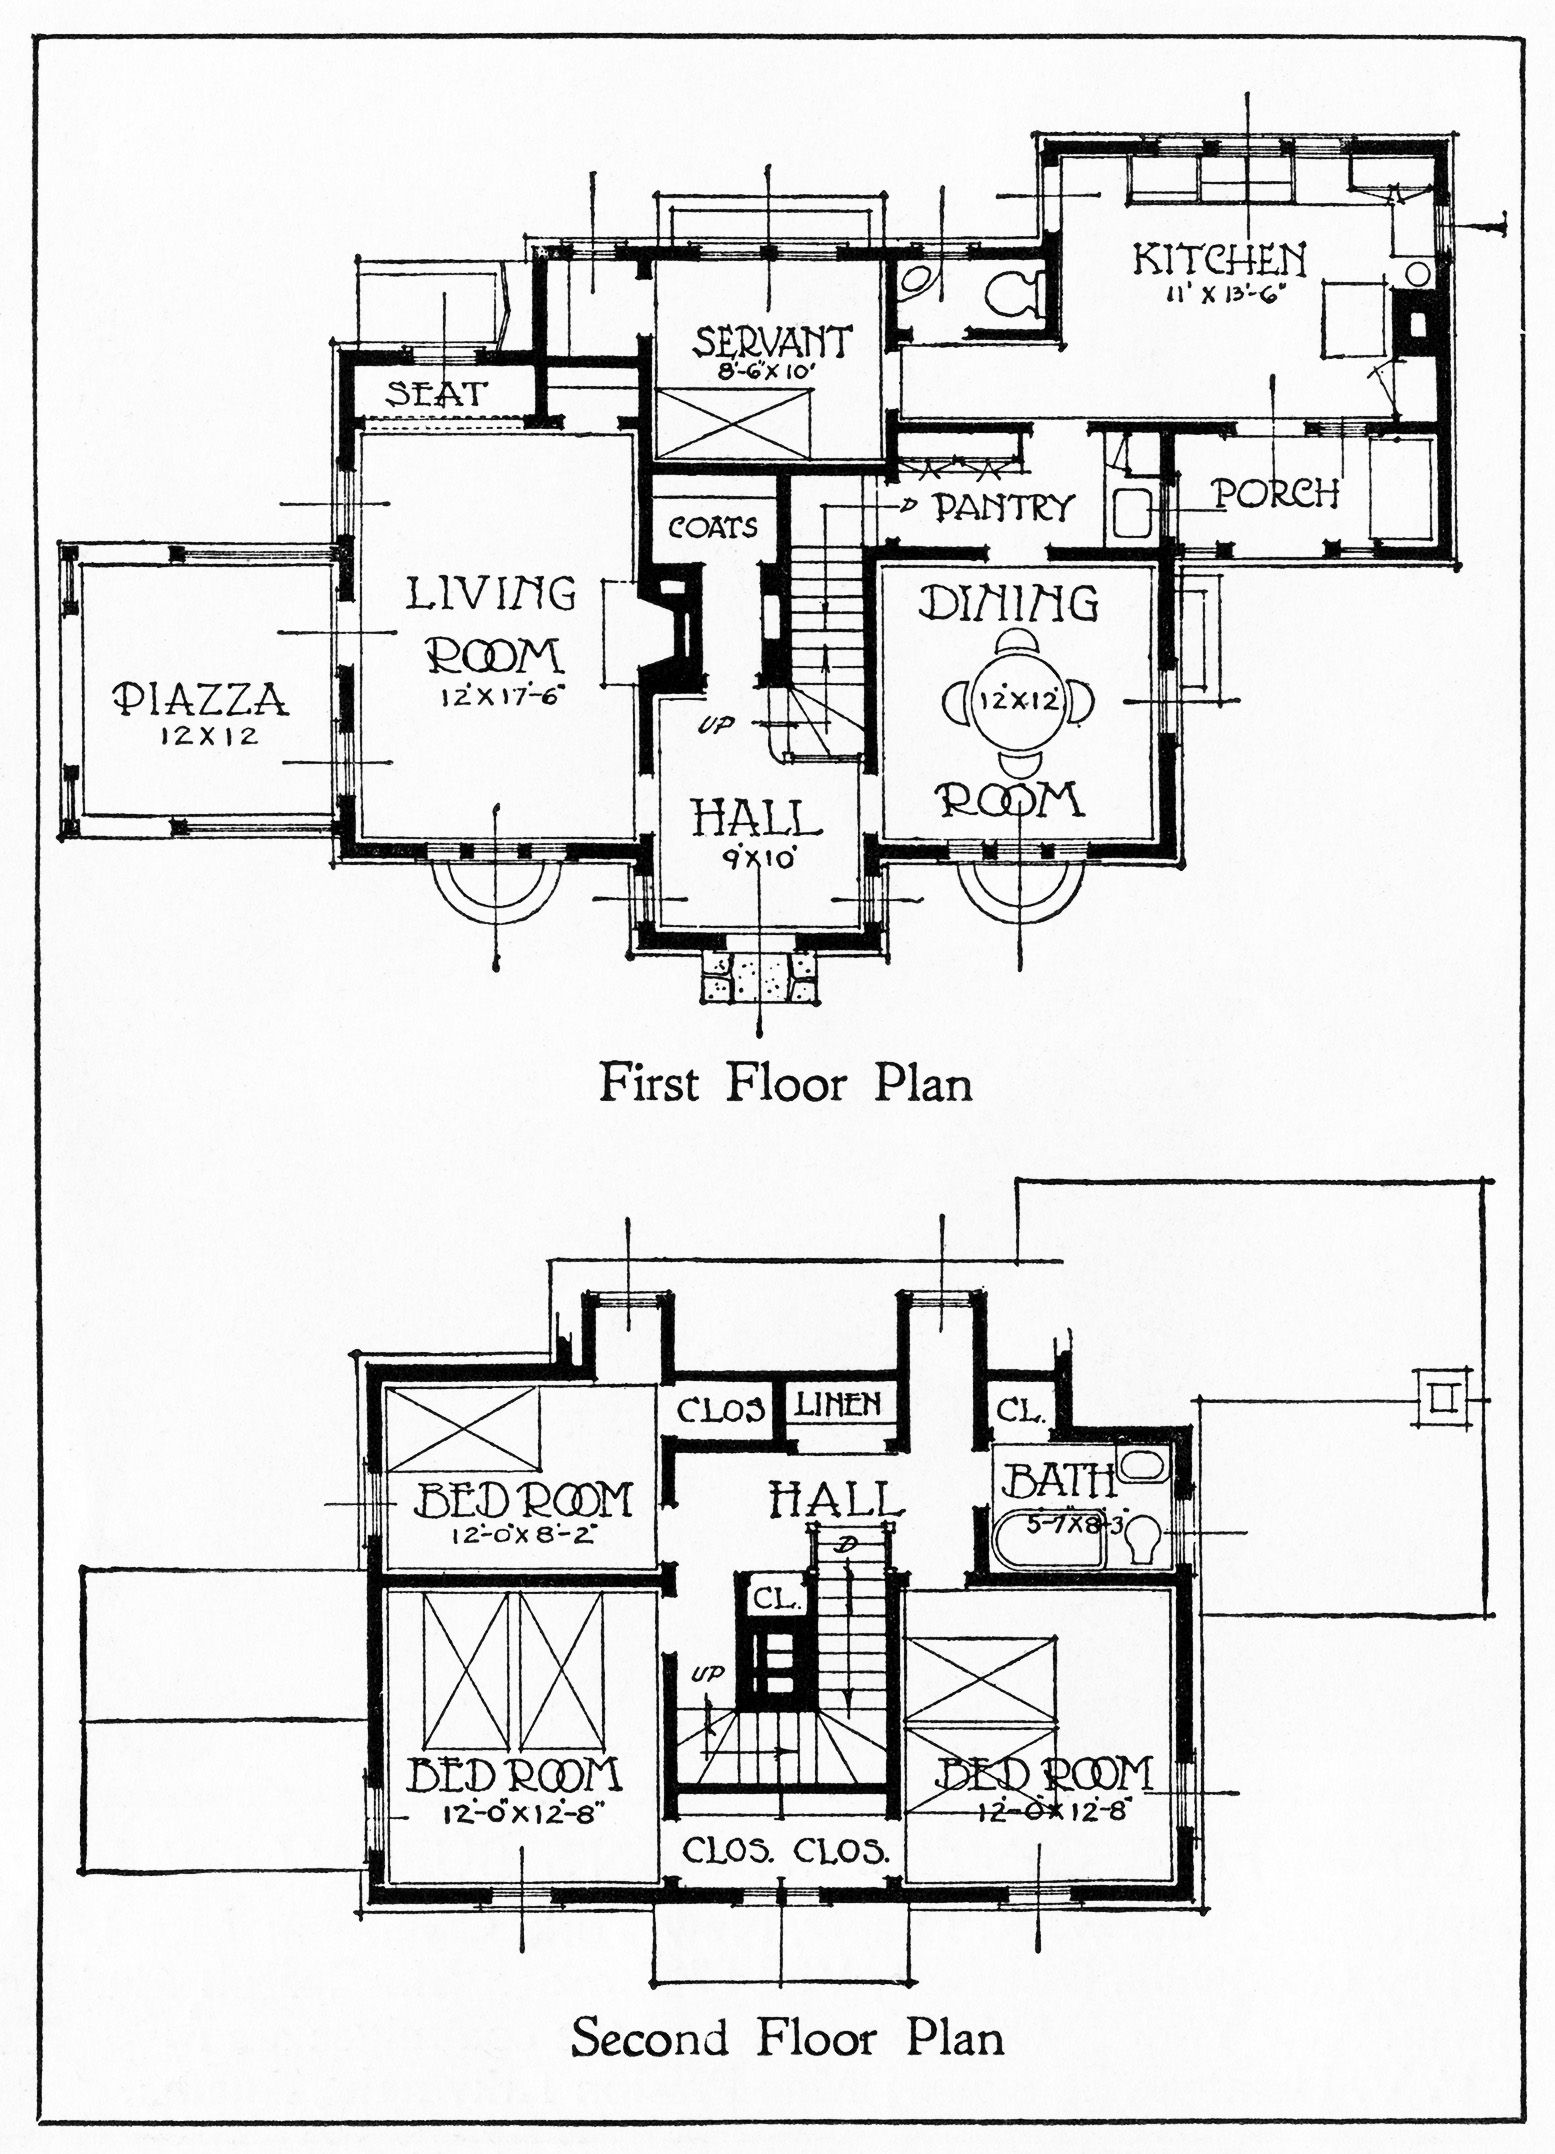 17 best images about cabin floor plans on pinterest house for Vintage floor plans